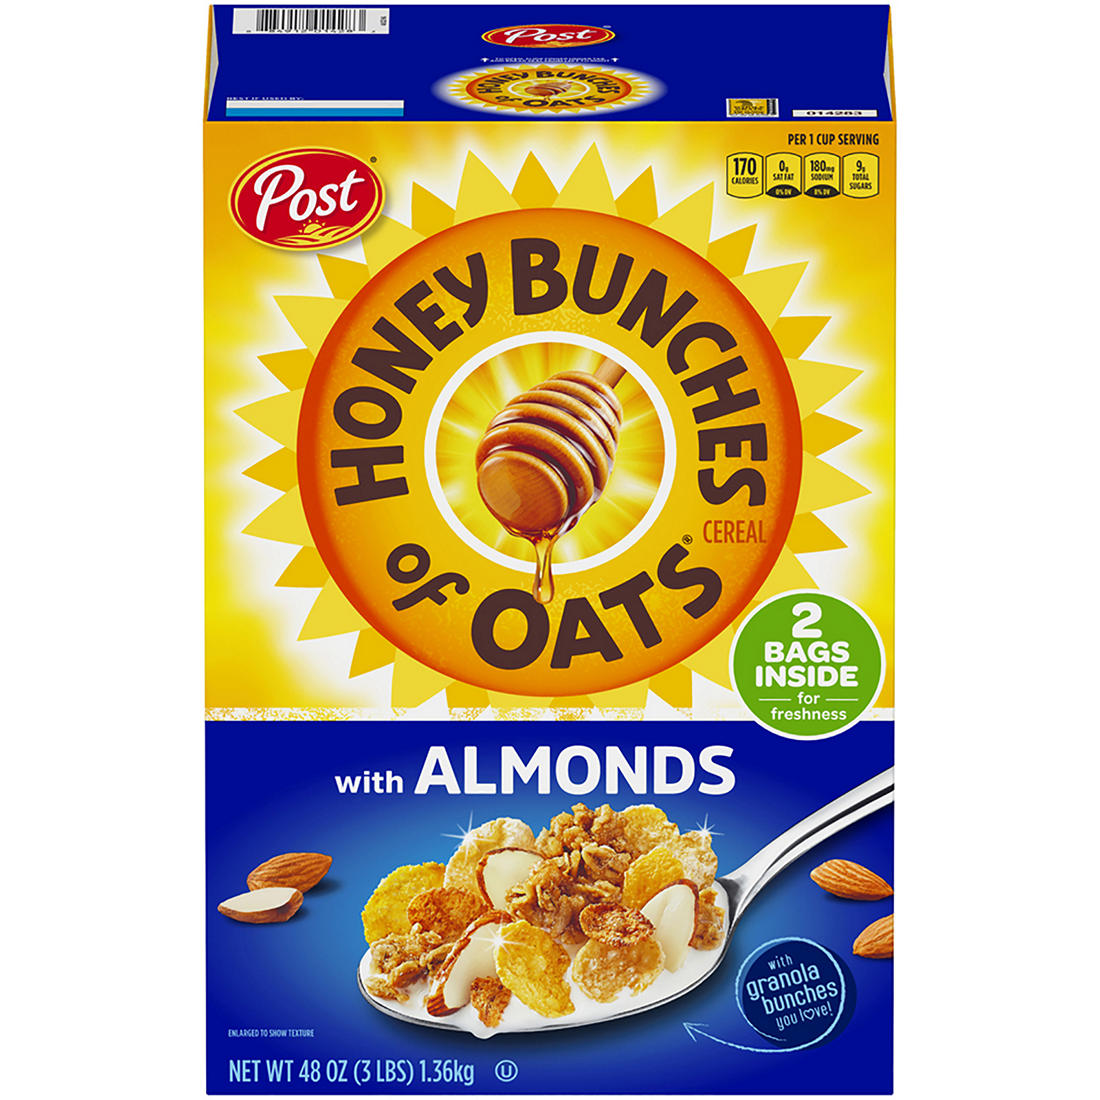 Post Honey Bunches of Oats with Almonds, 48 oz